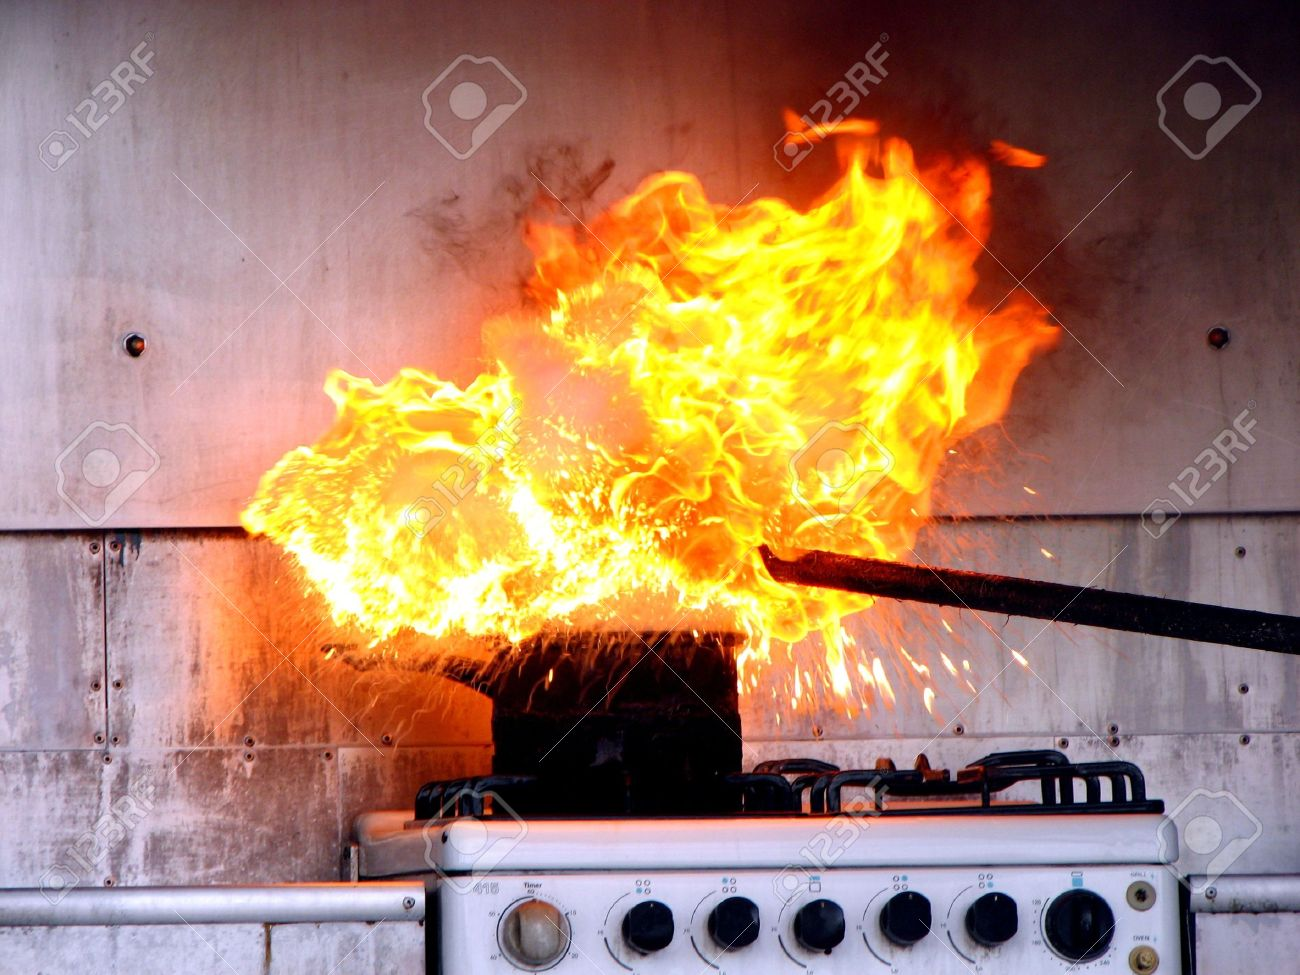 Putting water on oil fire on stove Stock Photo - 12932938